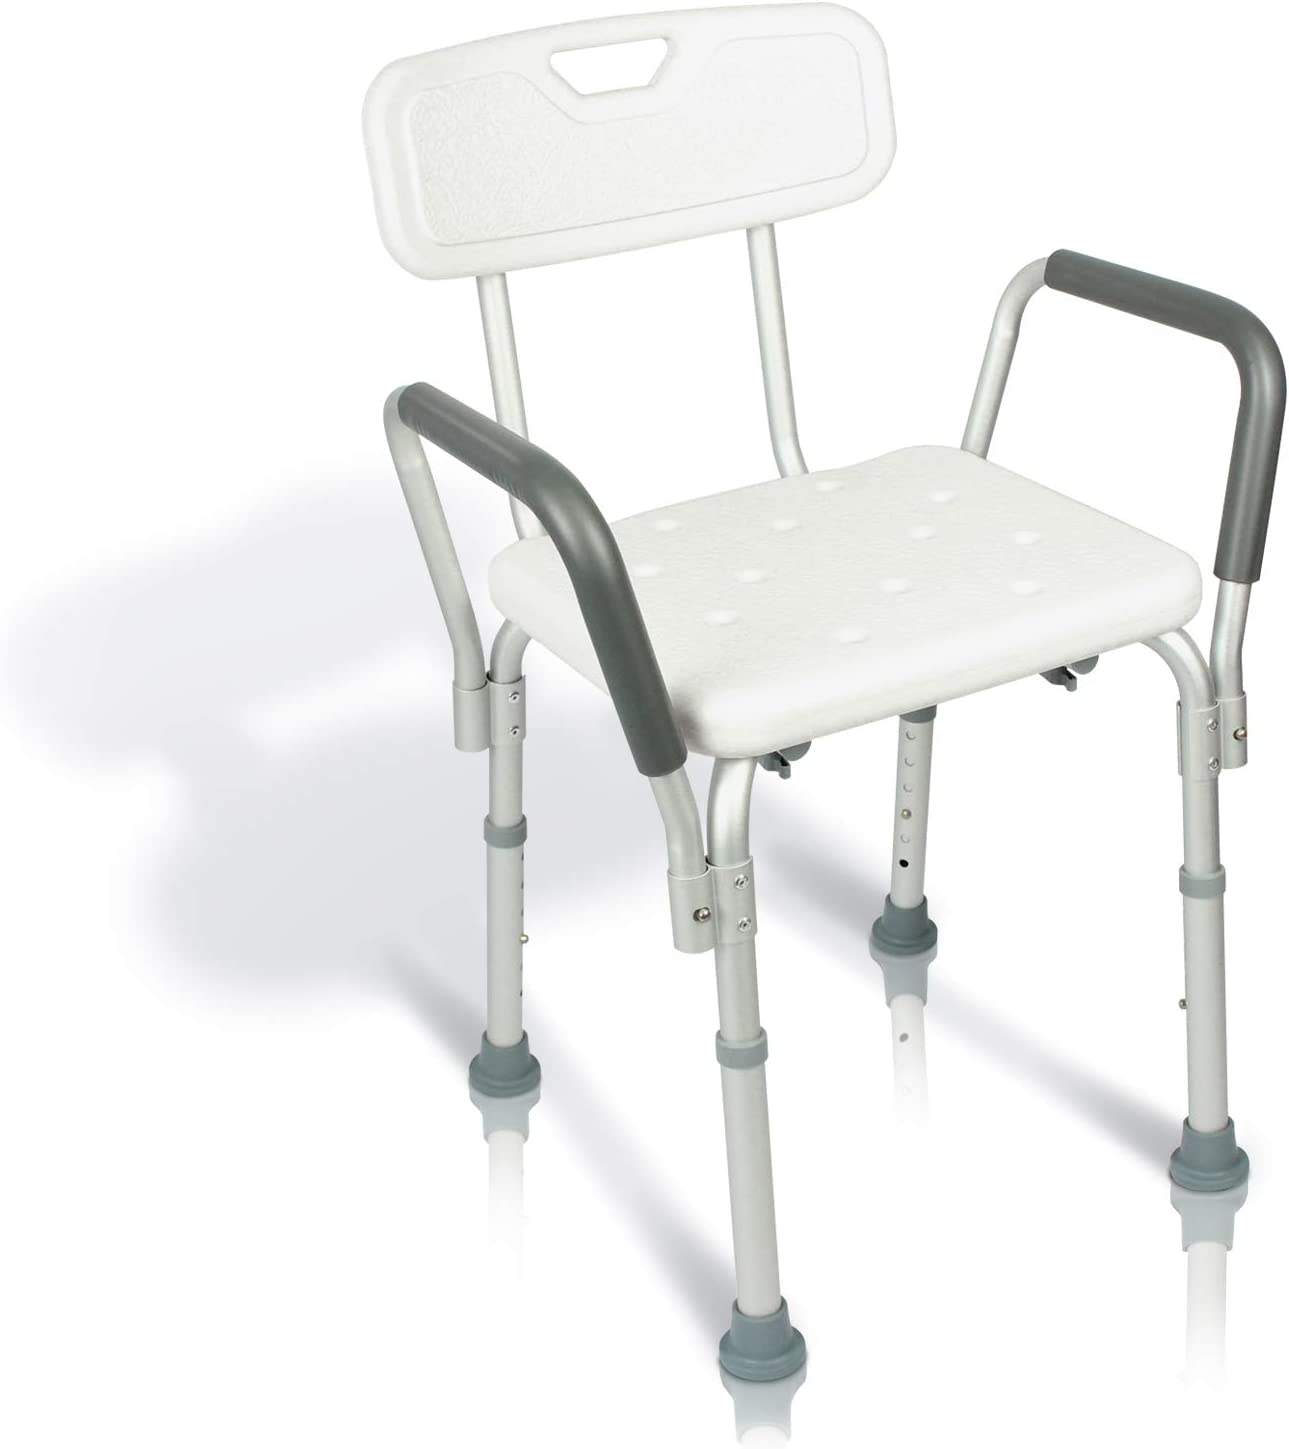 Vive Shower Chair with Back - Handicap Bathtub Bench with Padded Armrest  for Disabled, Seniors, Elderly - Adjustable Medical Bath Stool Spa Seat  with